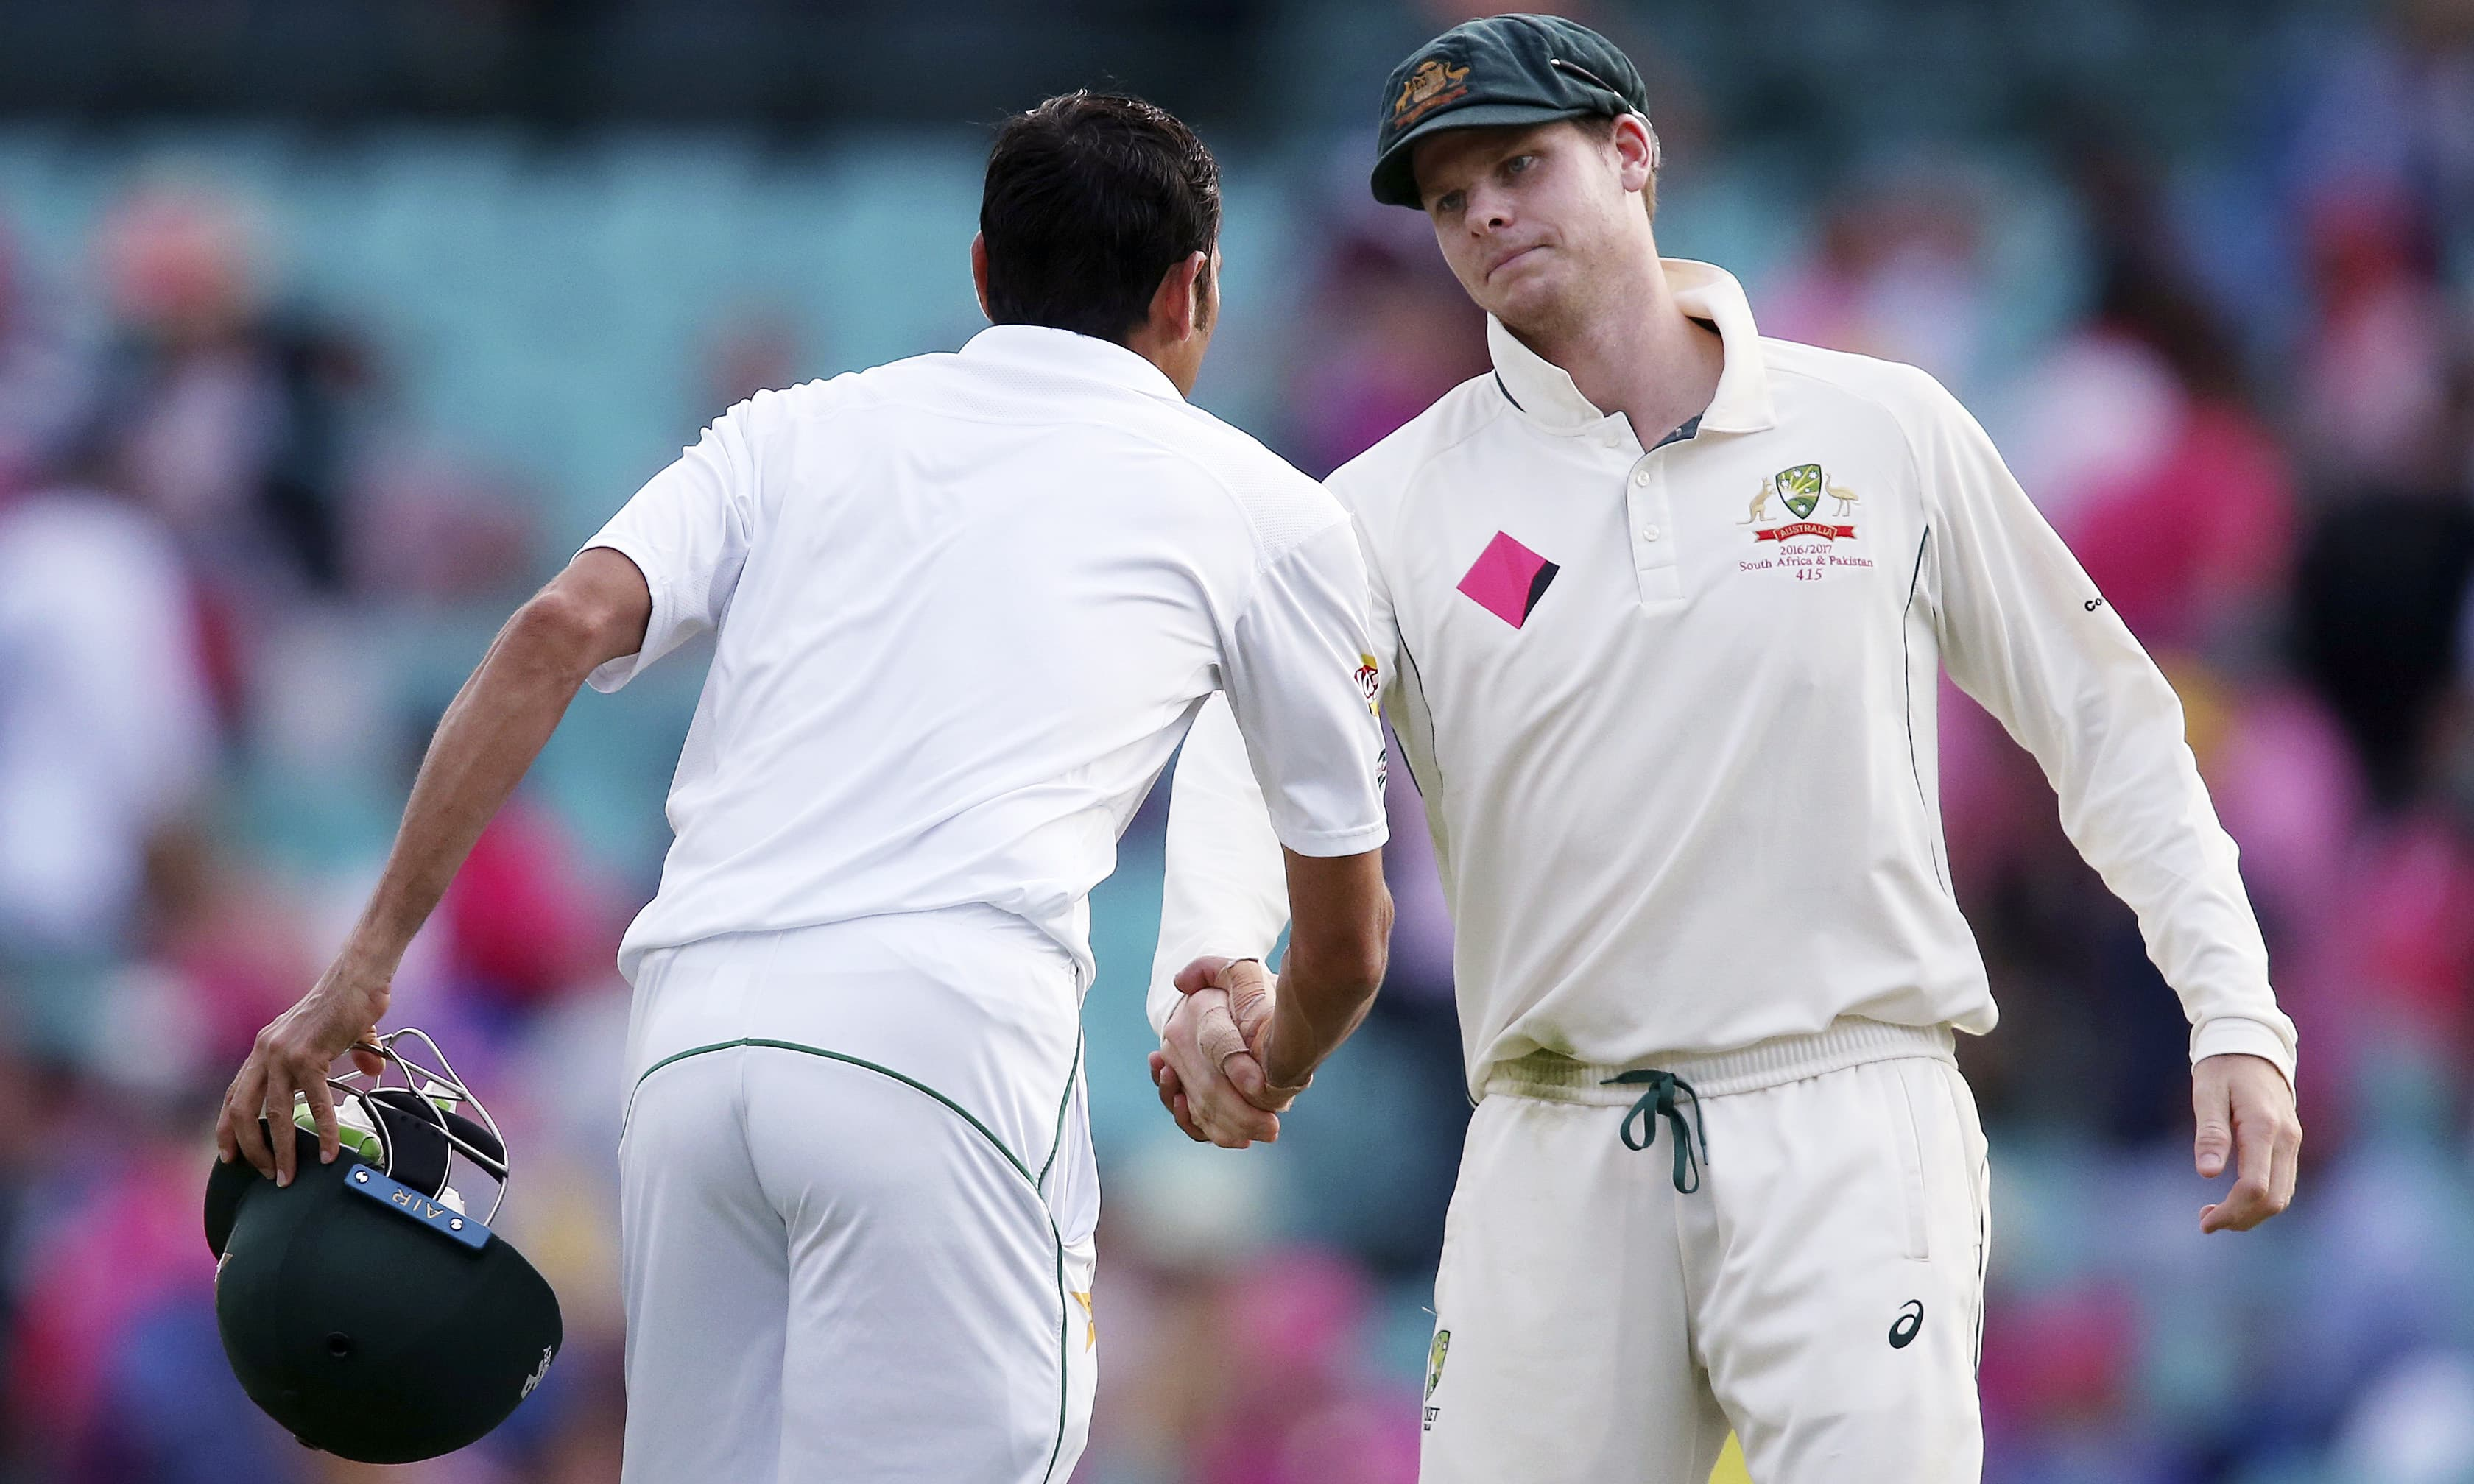 Steven Smith congratulates Younis Khan at the end of the day's play. —AP